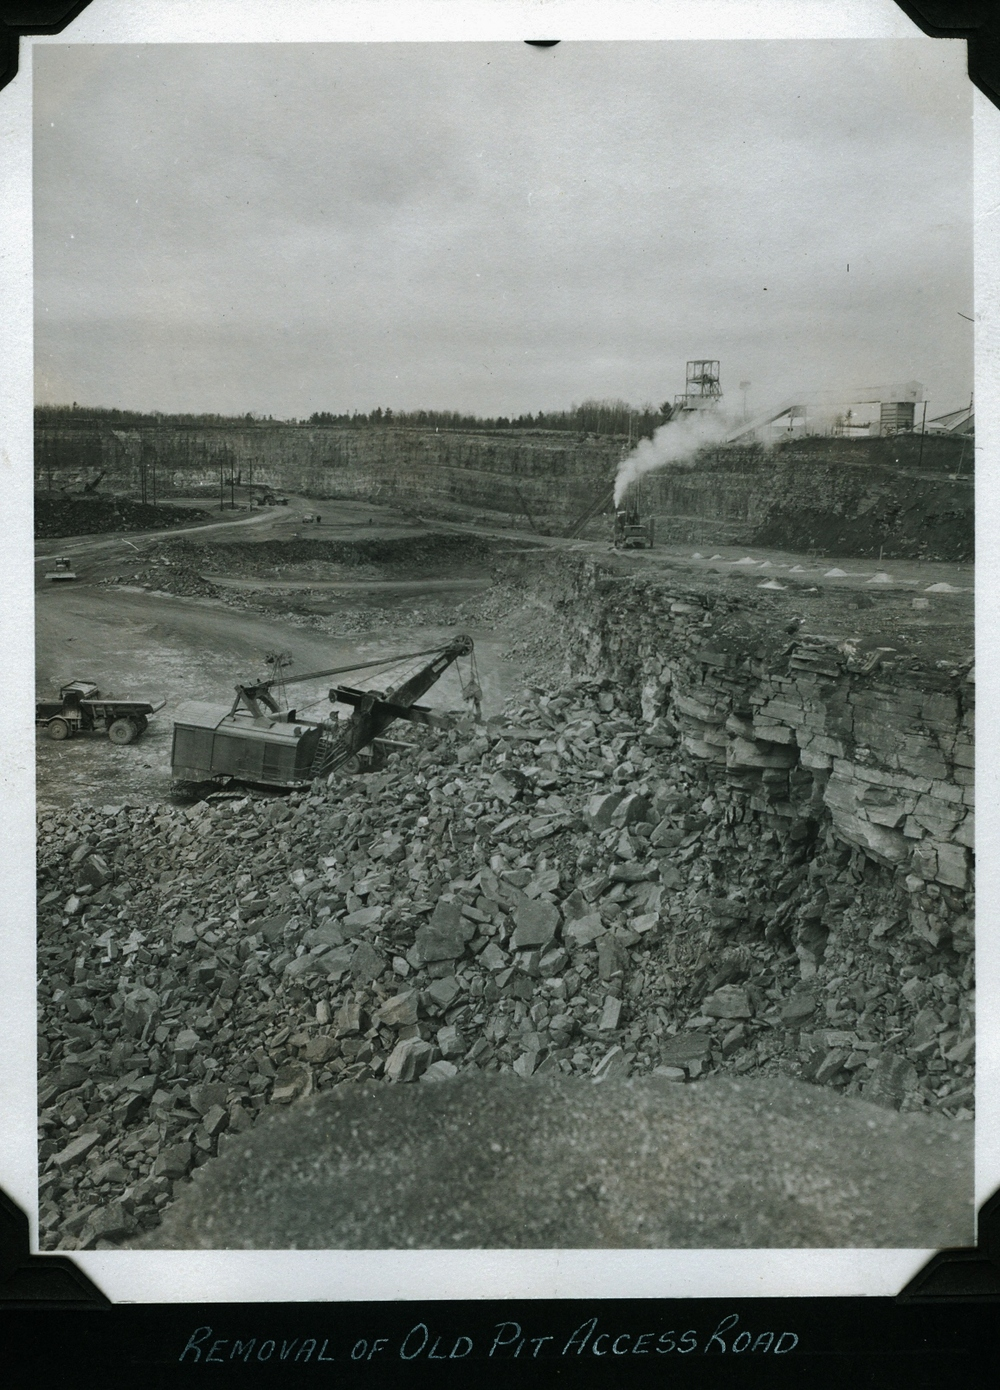 Marmoraton Mine - removal of Old pit road